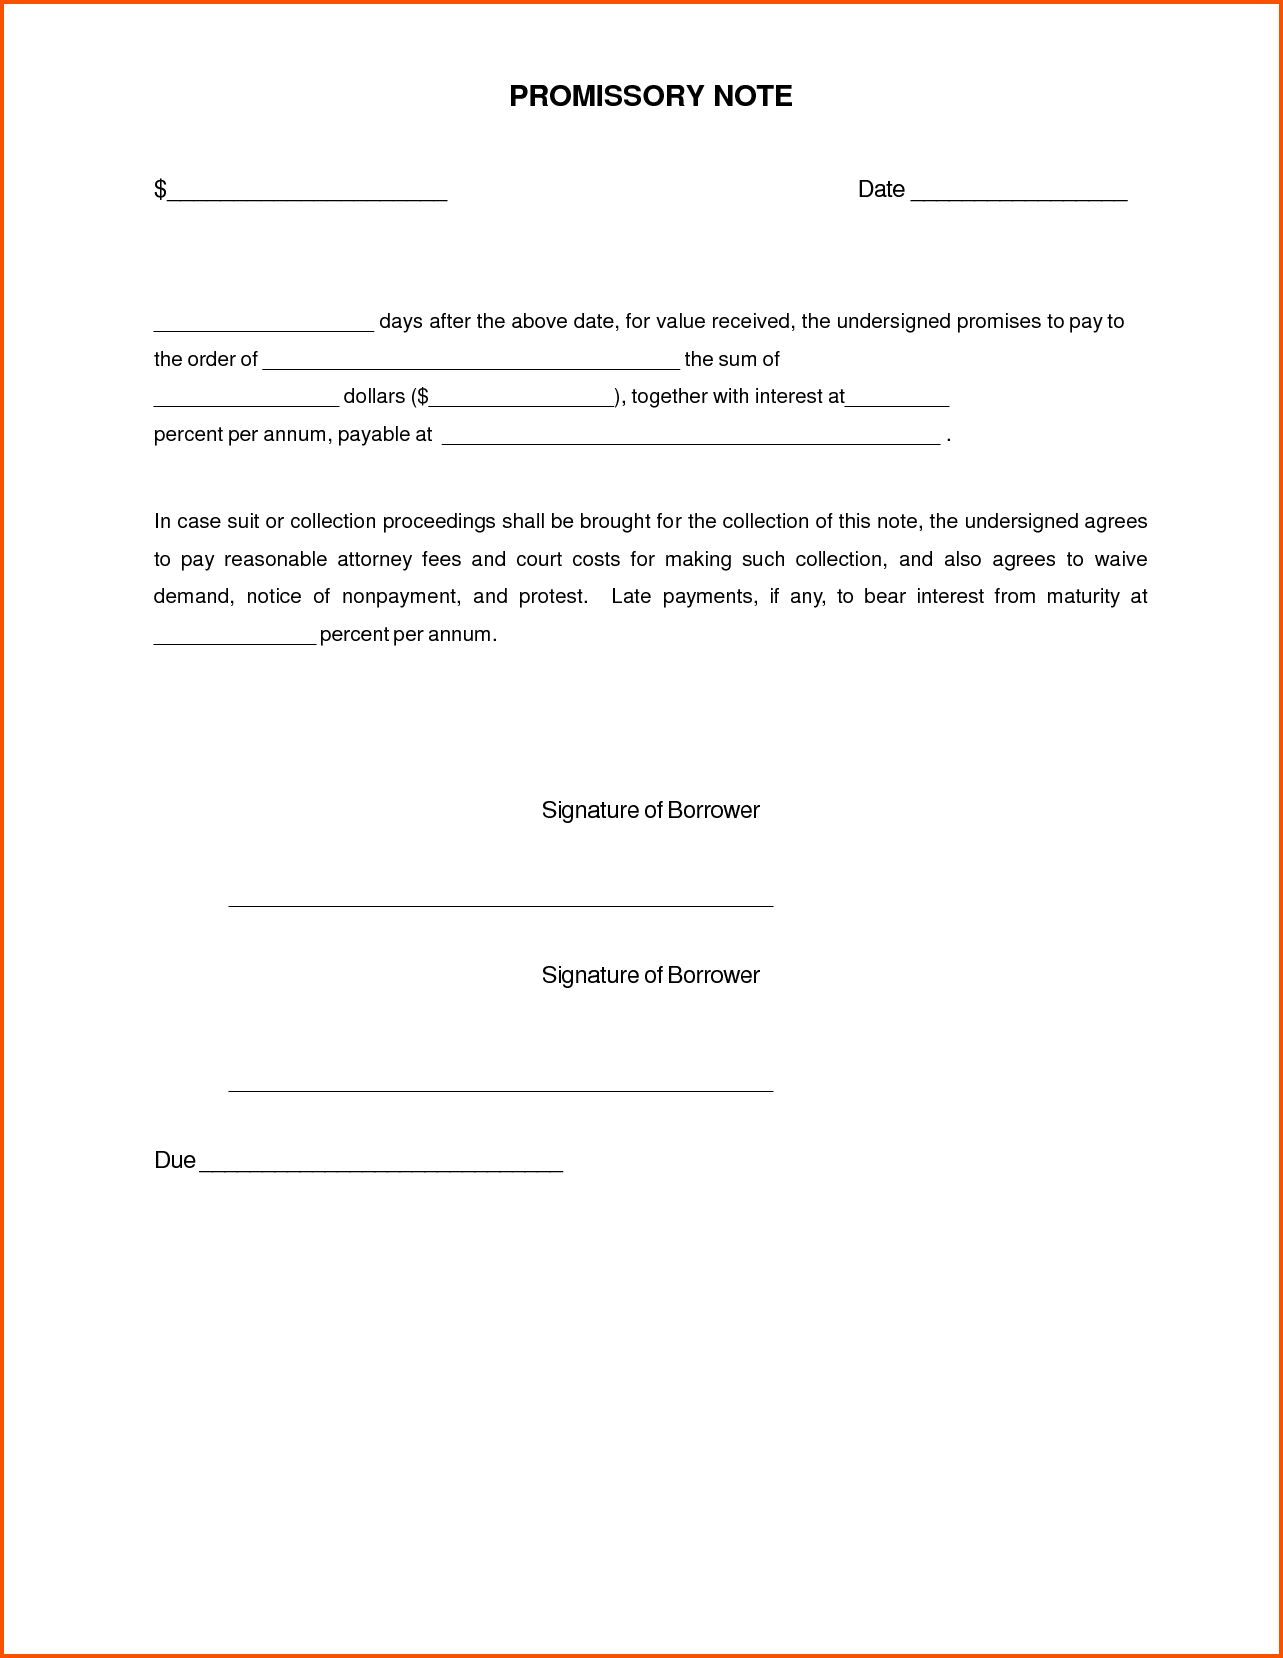 Sample Of Promissory Note For Personal Loan